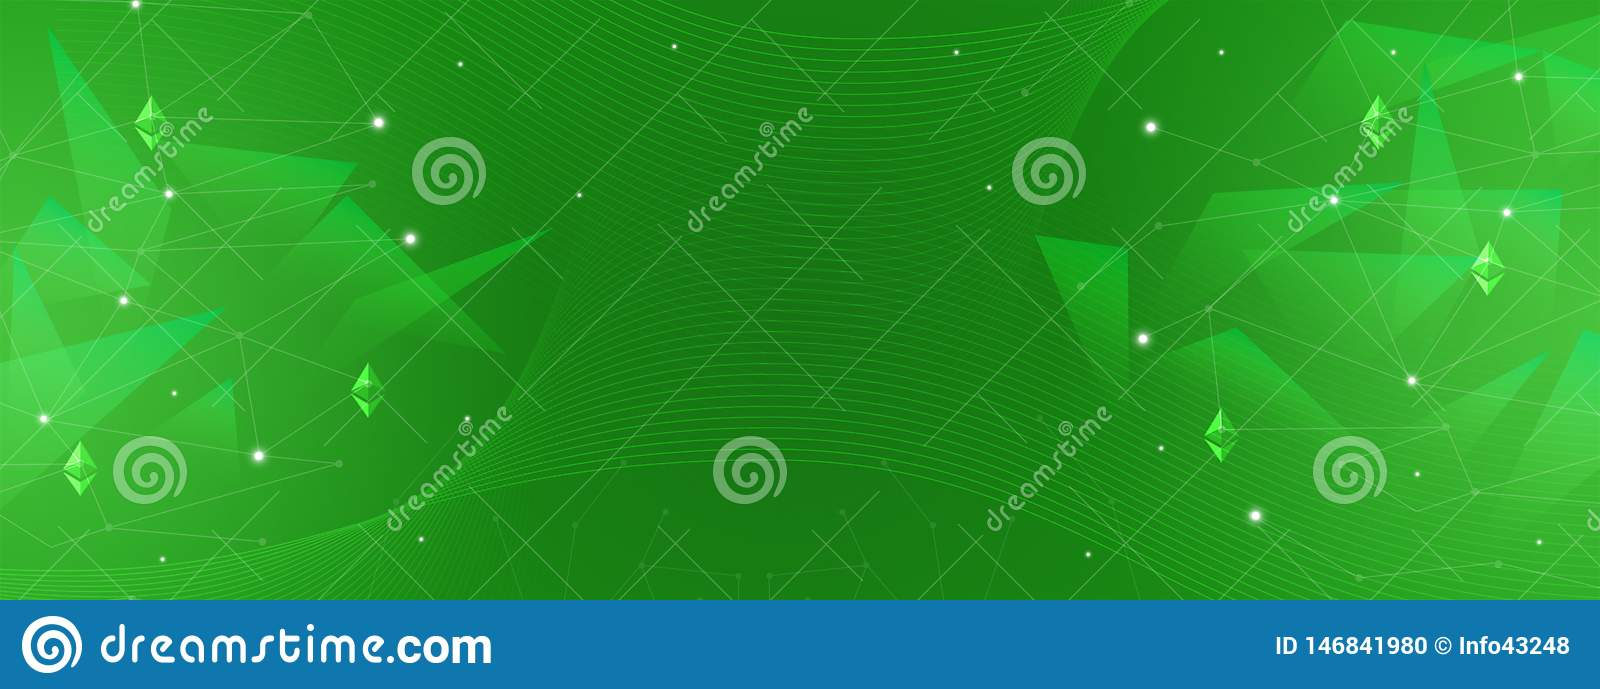 Abstract green background for finance, business, cryptocurrency, blockchain, ethereum, networks